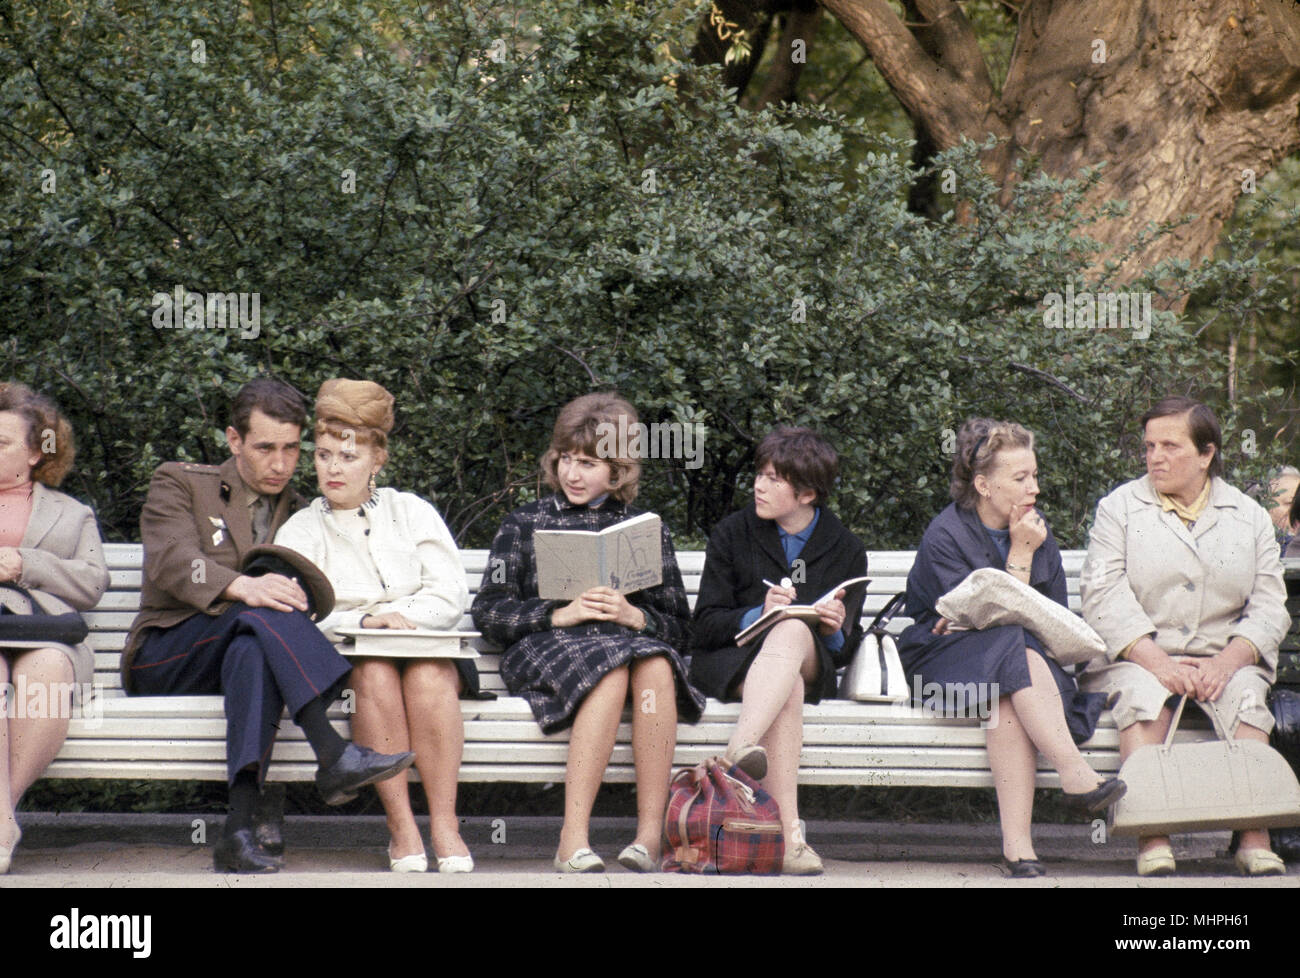 People sitting on a park bench, Leningrad (St Petersburg), USSR.      Date: circa 1960s - Stock Image